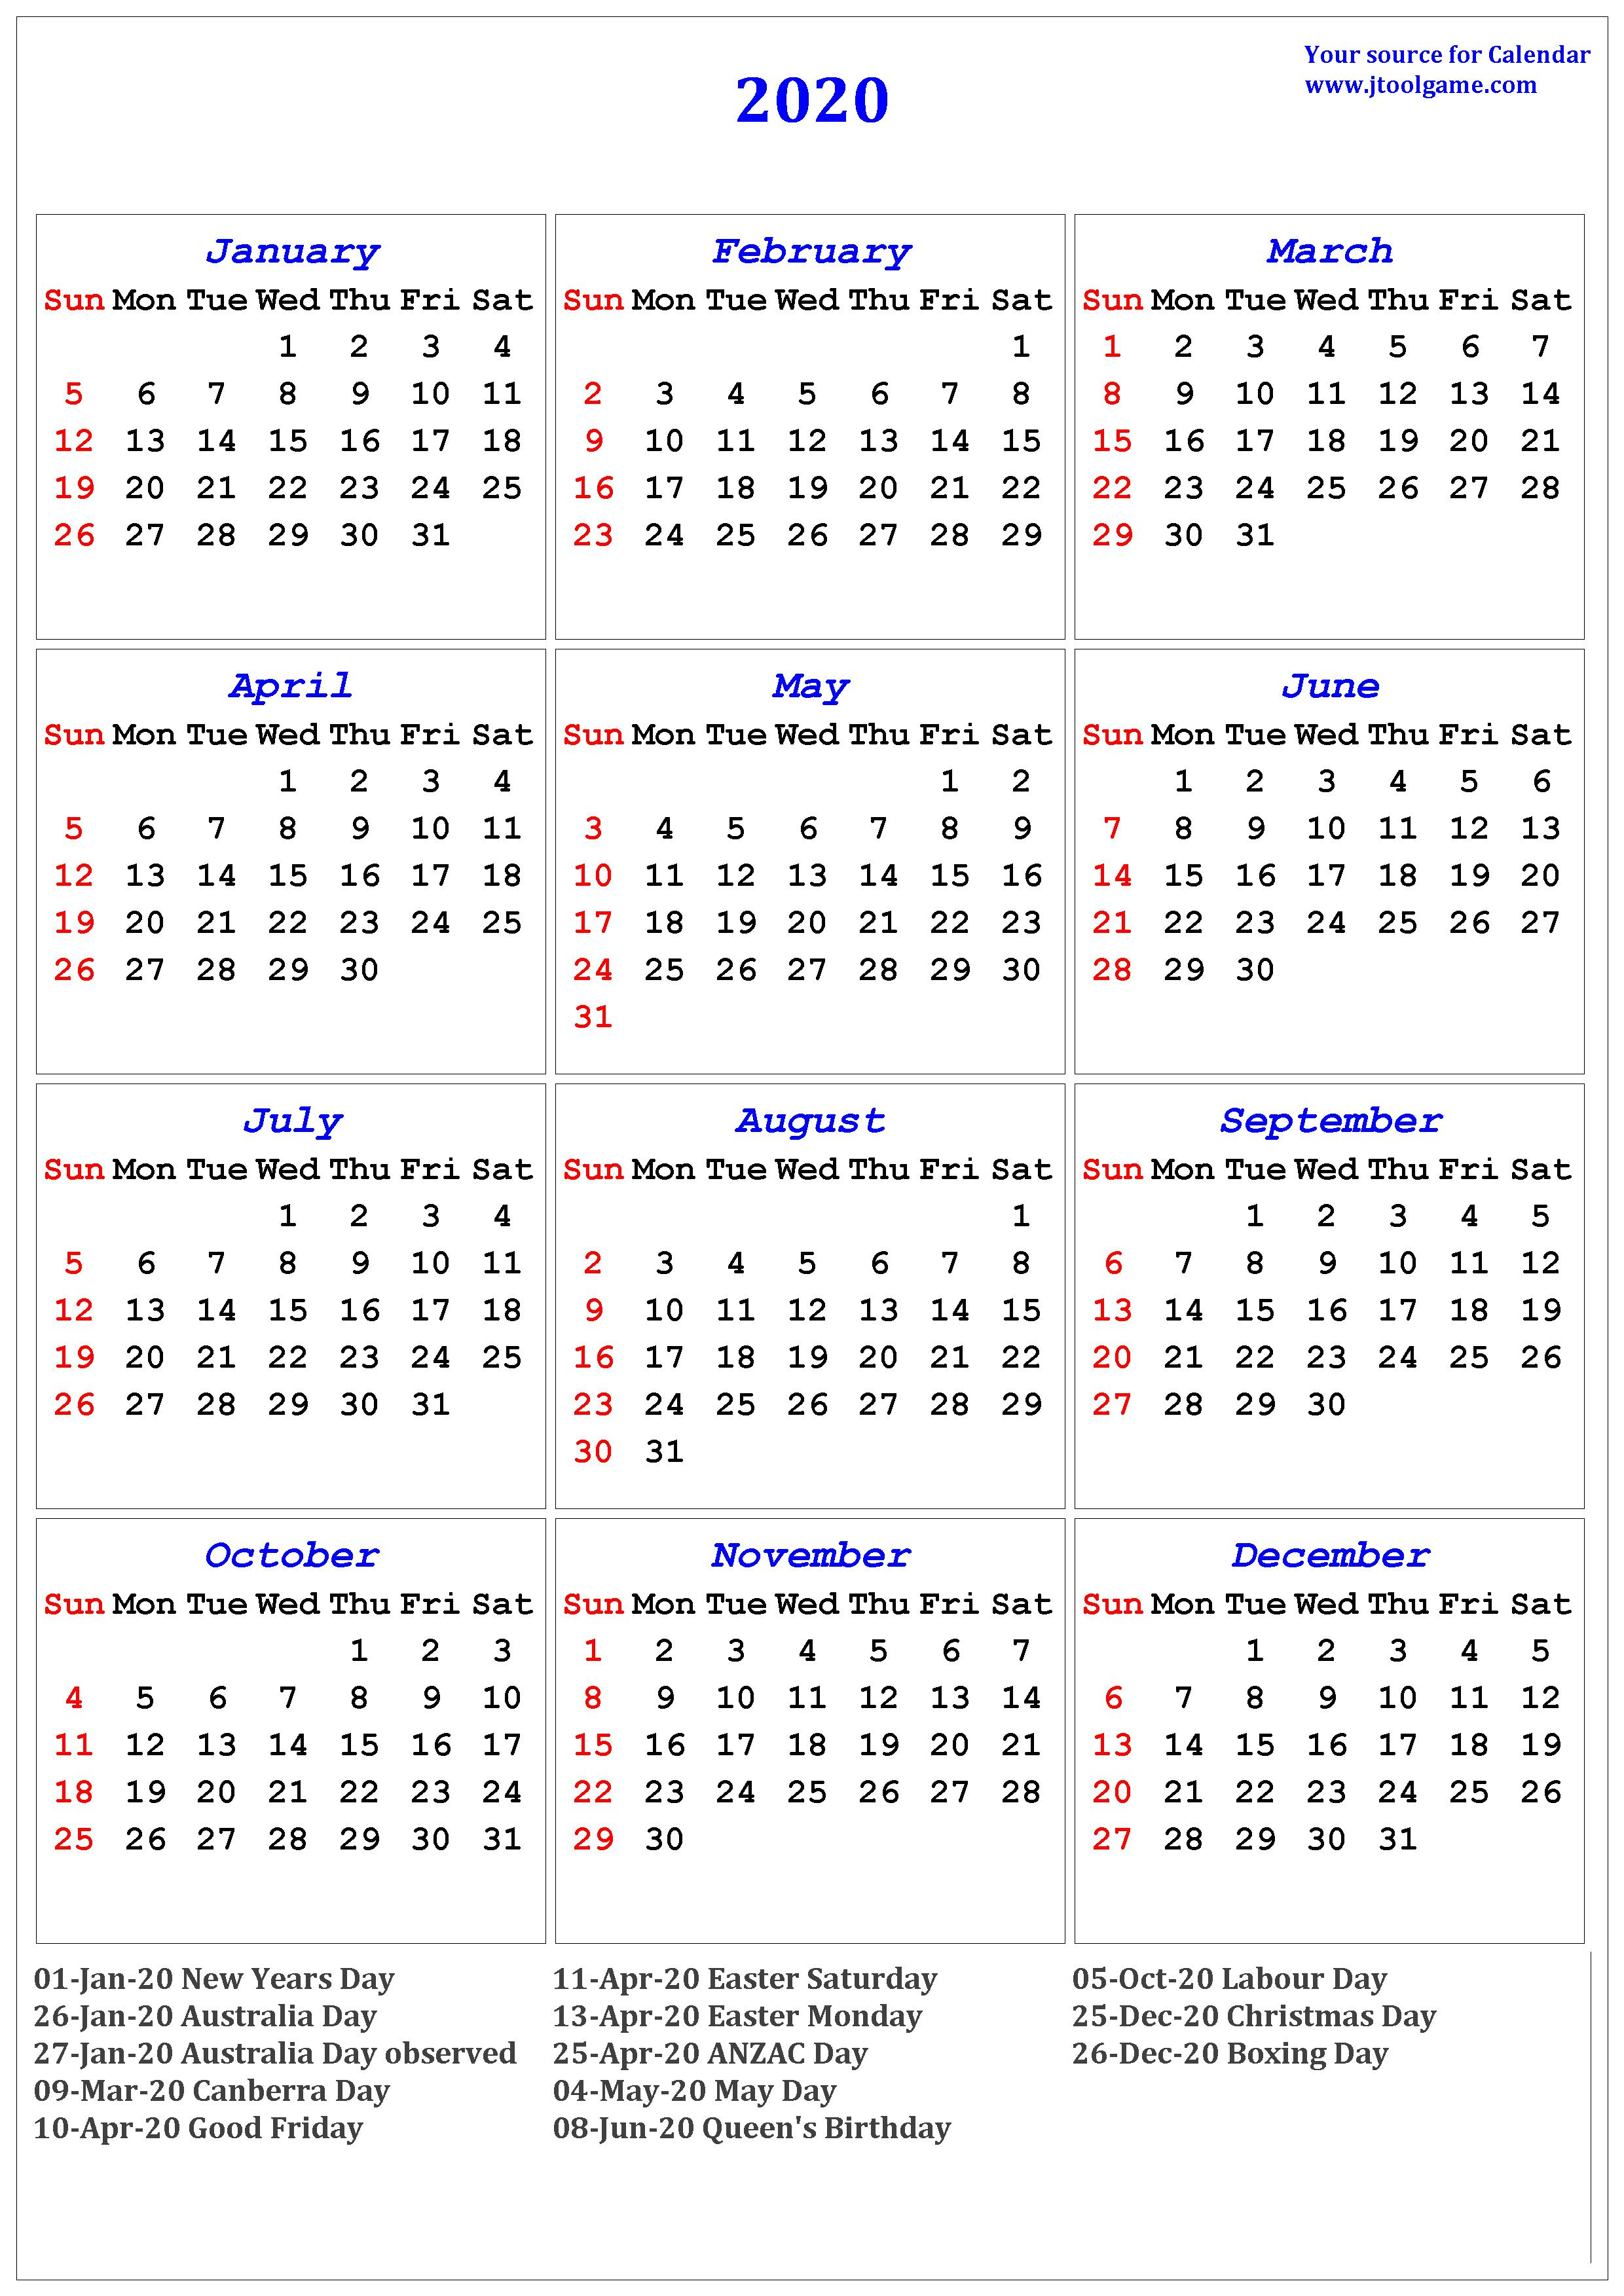 2020 Calendar - Printable Calendar. 2020 Calendar In Multiple Colors throughout Free Printable 2020 Monday To Friday Australian Calender